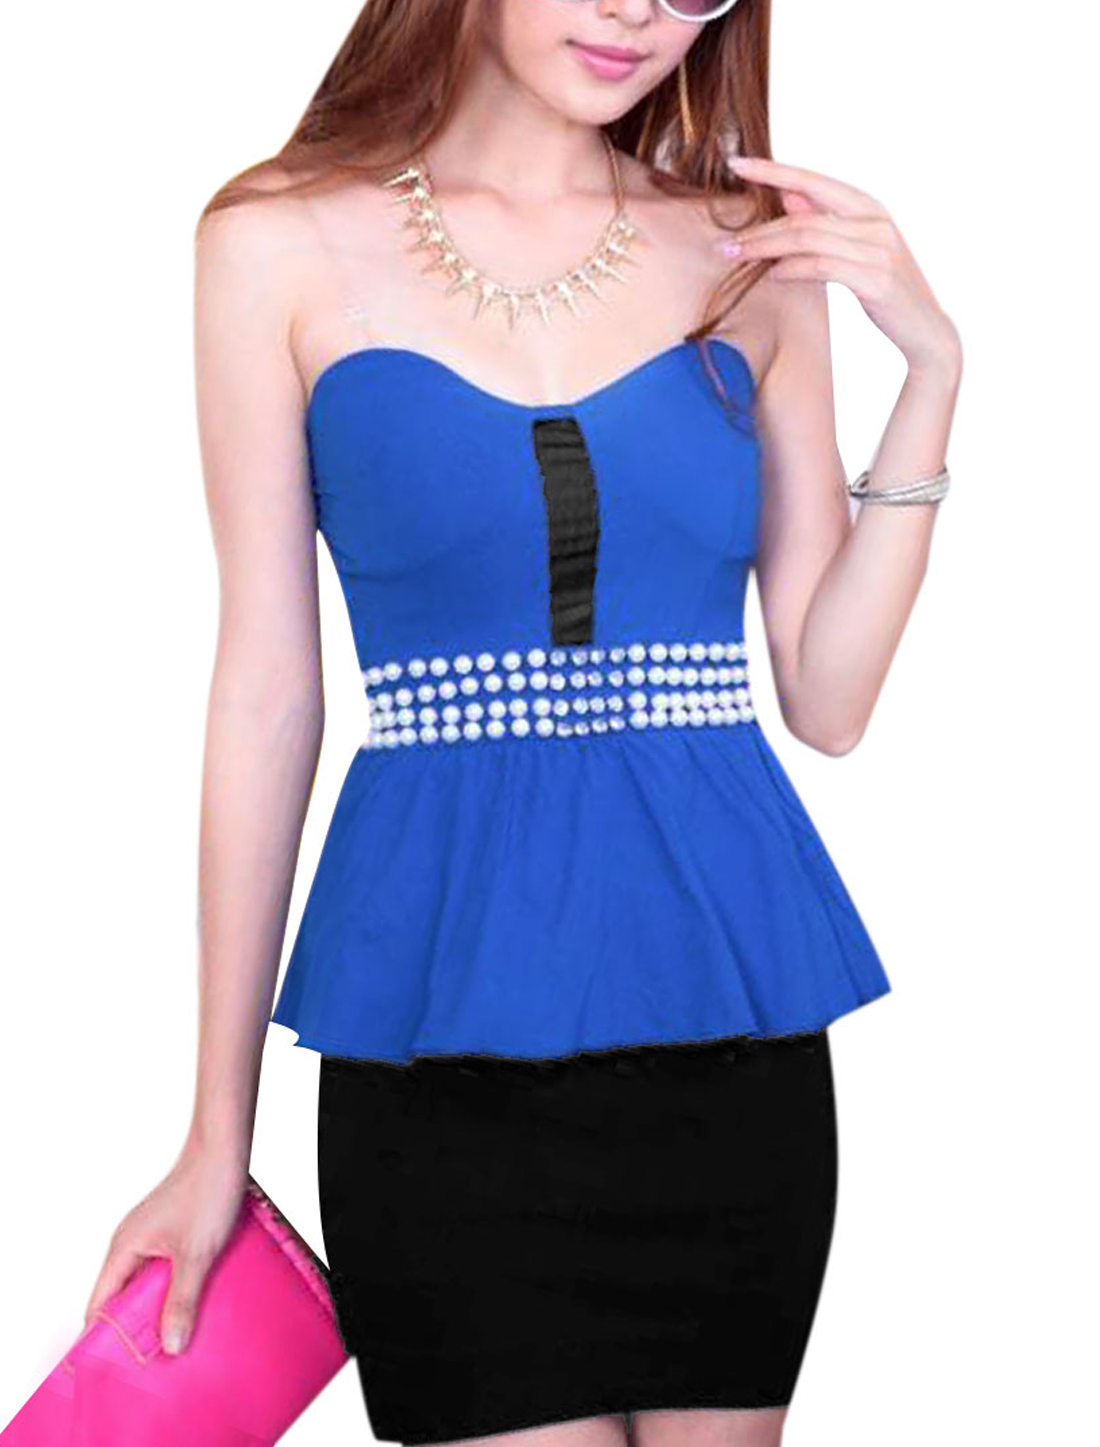 Women Sleeveless Zip Closure Mini Peplum Dress Blue Black XS